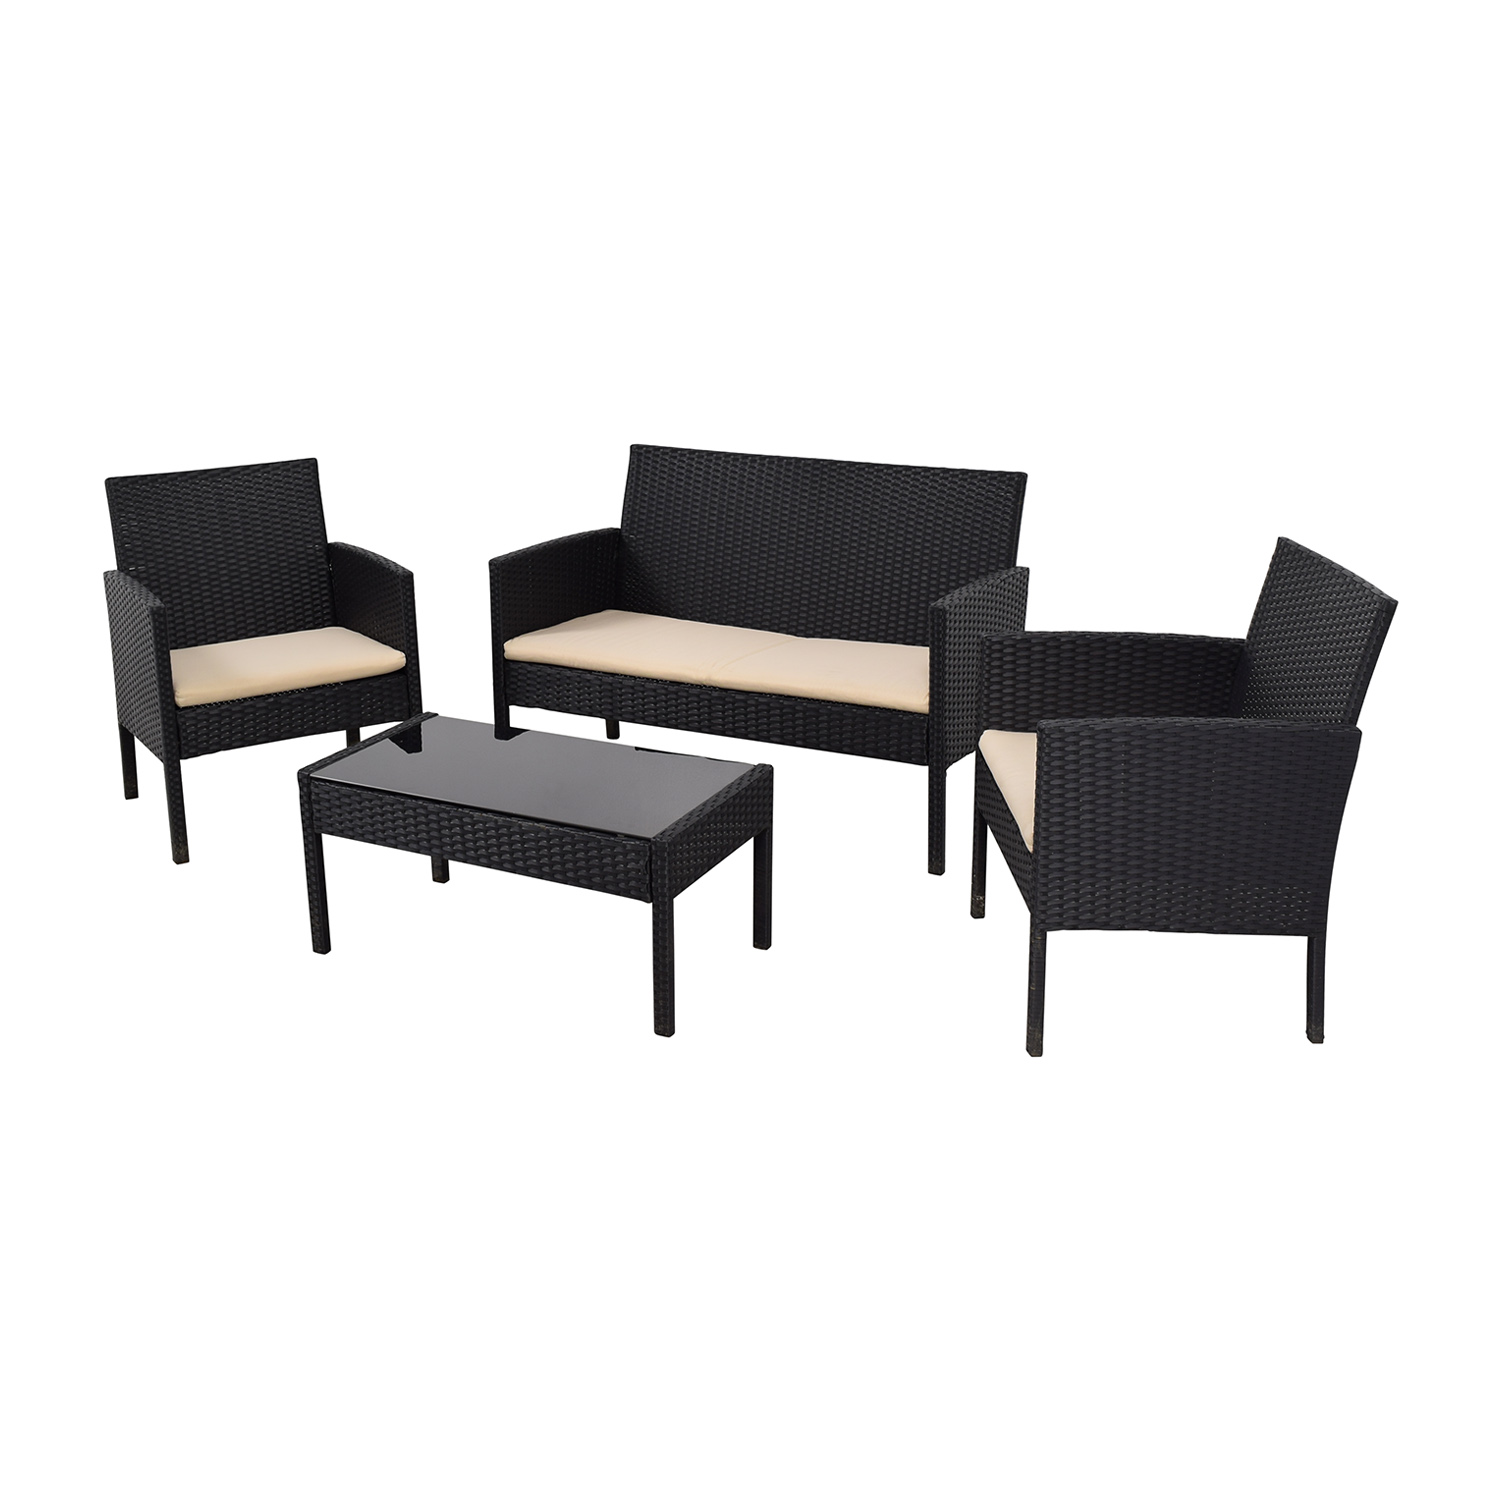 OFF Radeway Radeway Black Outdoor Garden Patio Furniture